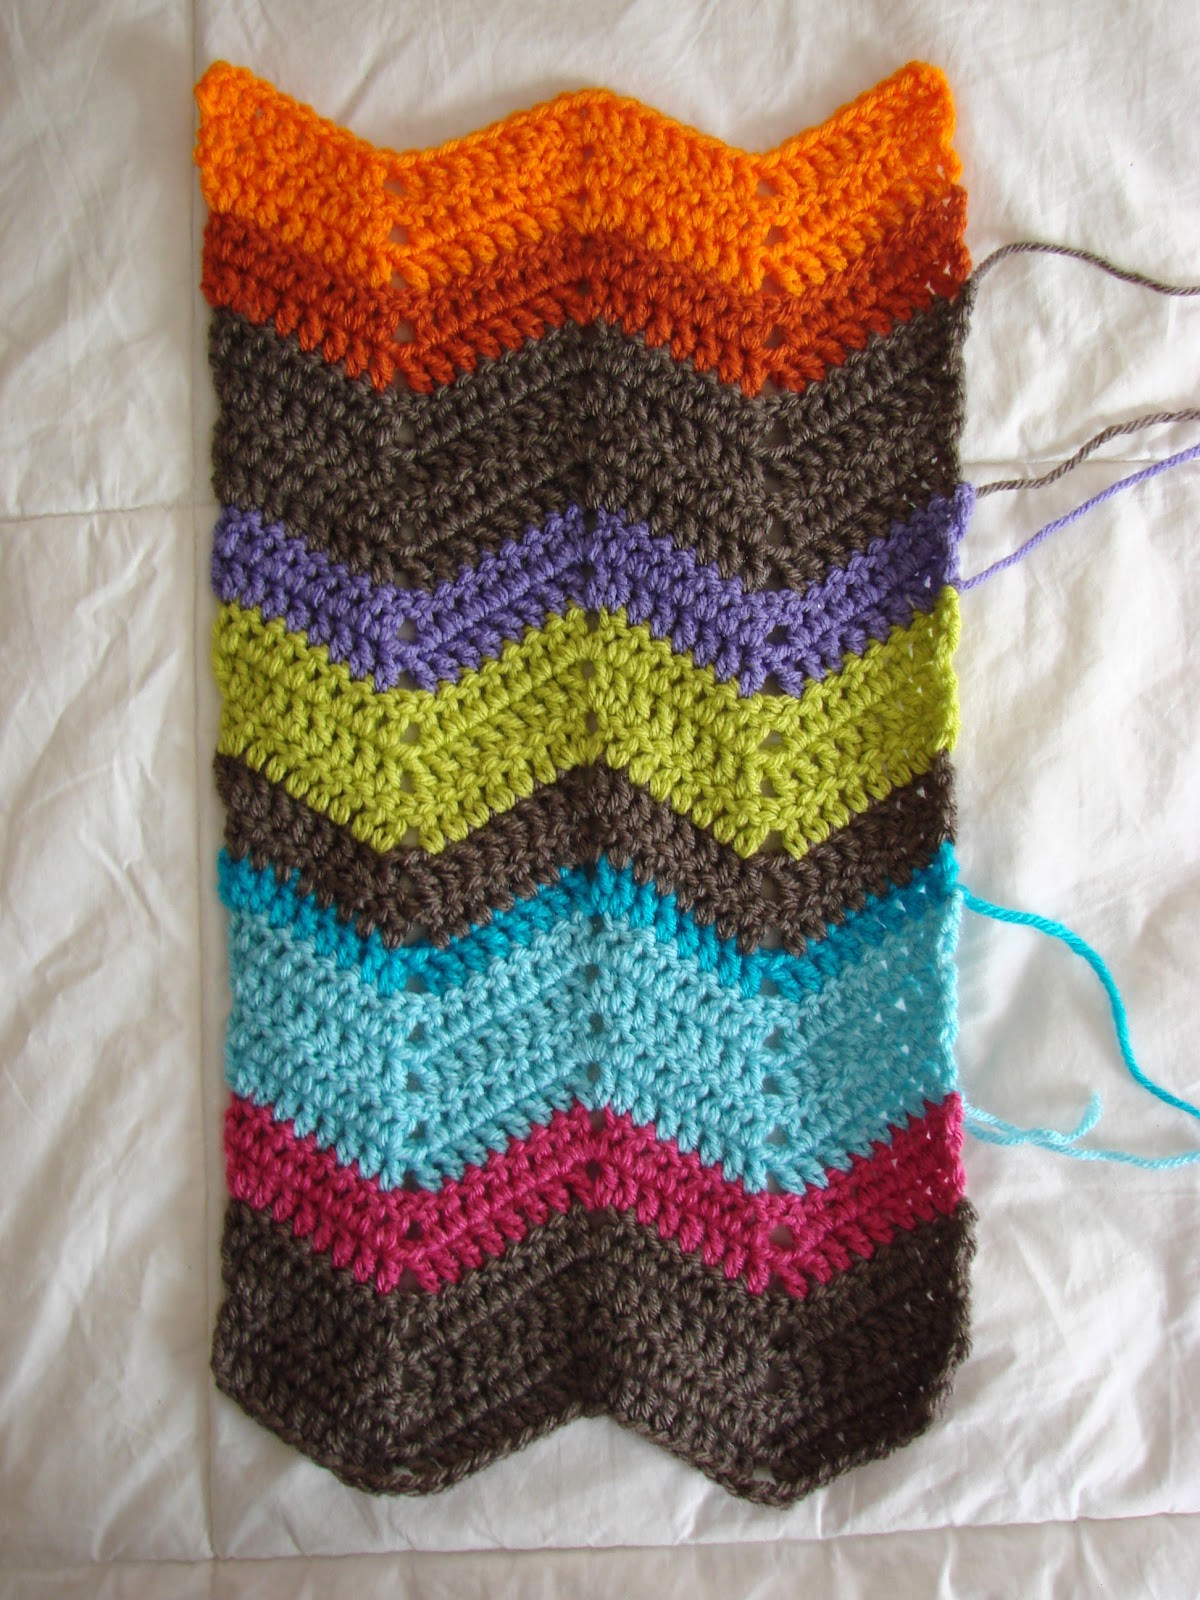 Chevron Crochet Pattern Fresh Crochet In Color Tuesday Saturday Tallies Of Adorable 49 Pictures Chevron Crochet Pattern